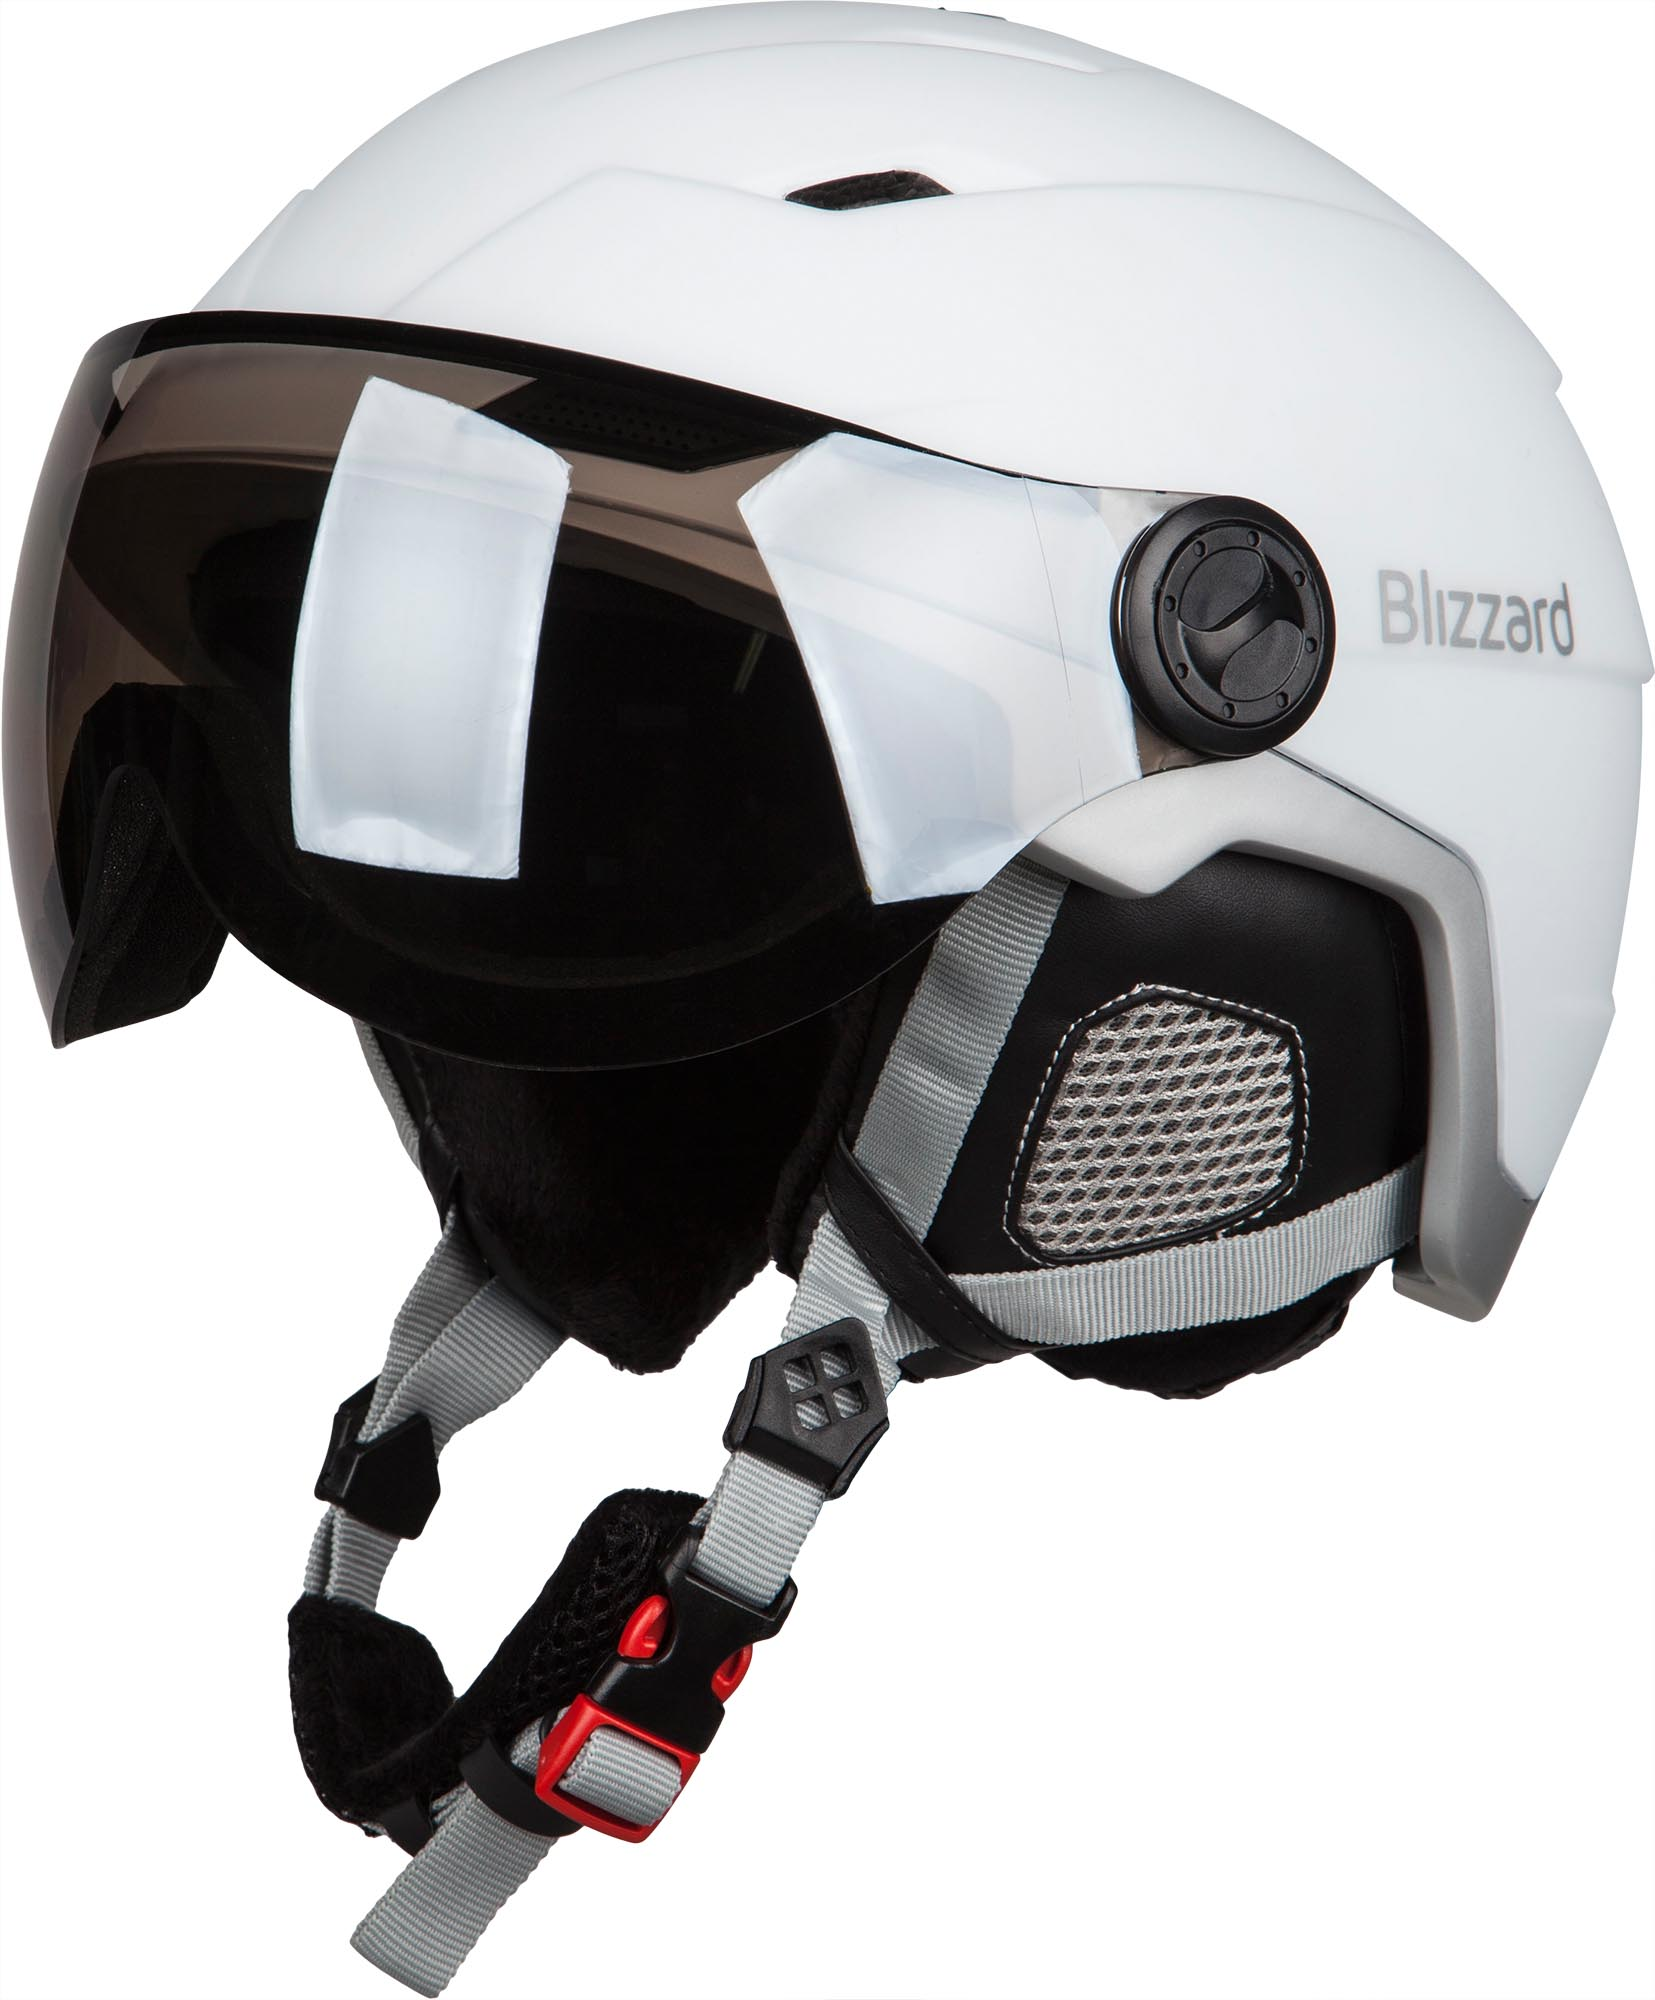 Blizzard VIVA Double Visor